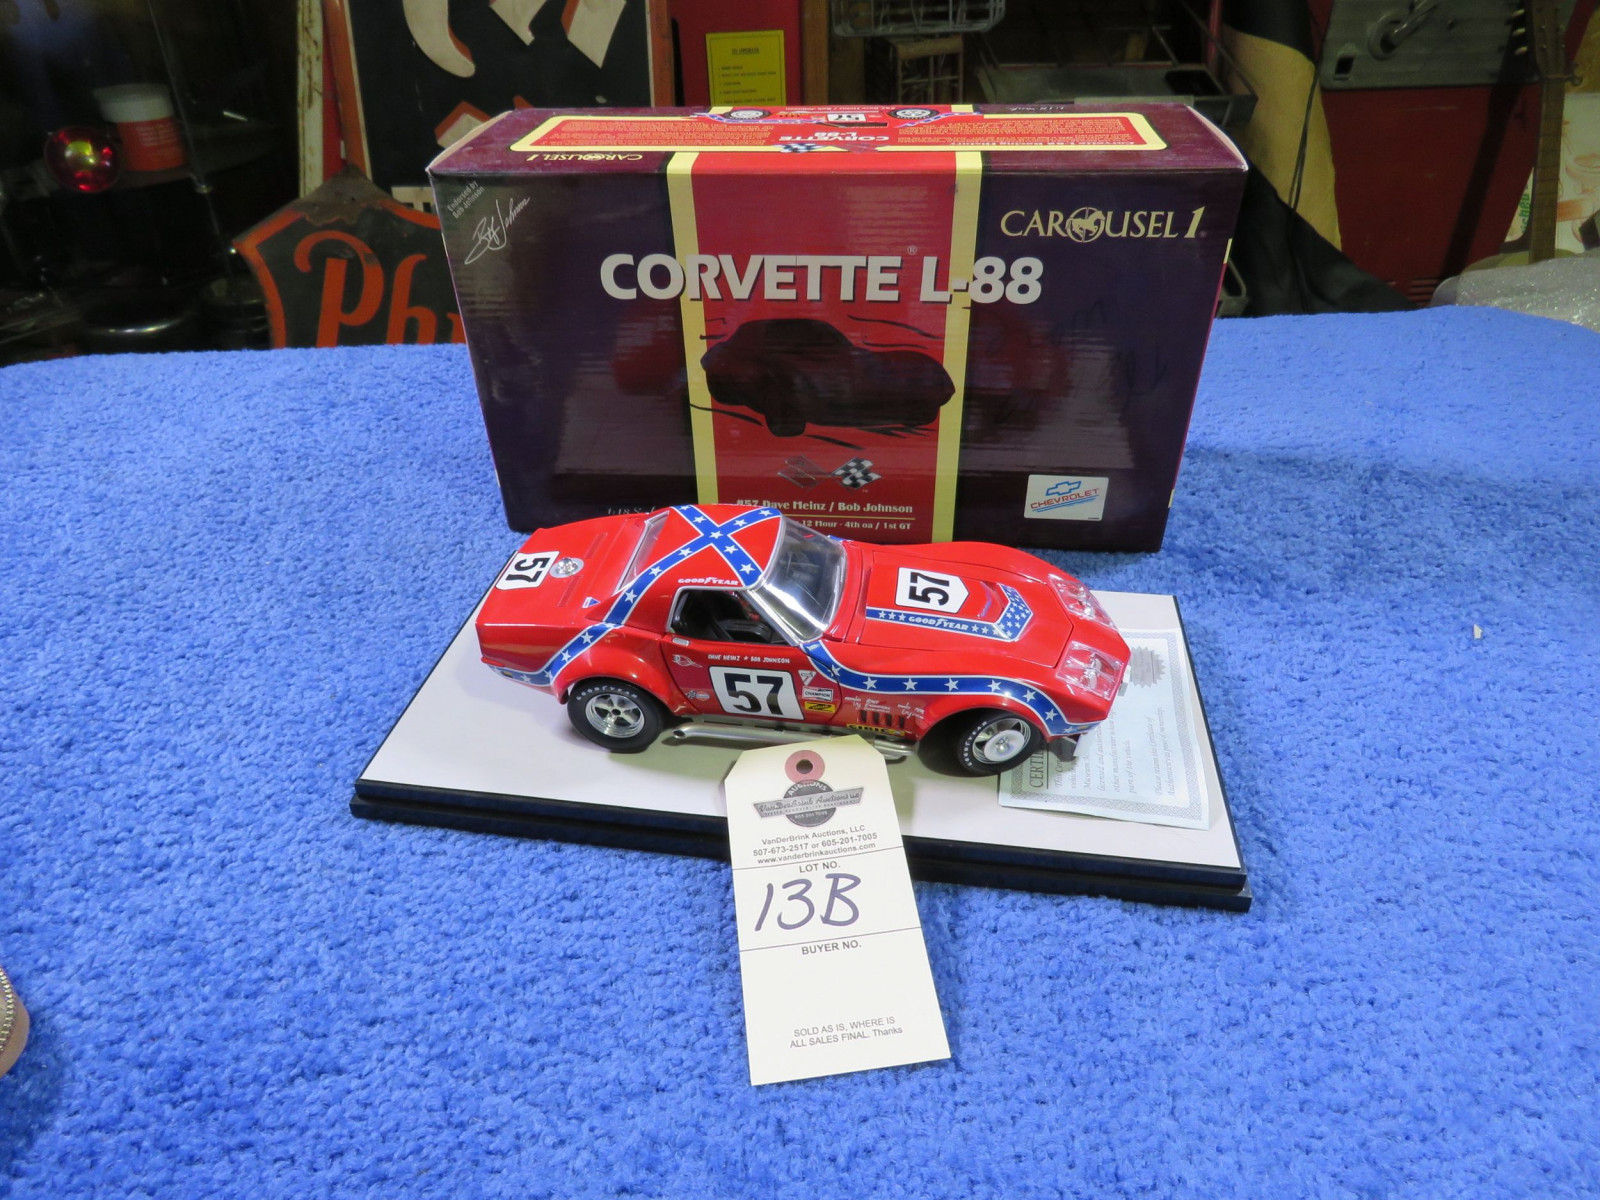 Chevrolet L88 Corvette #57 Dave Heinz 1/18th Scale Model - Image 1